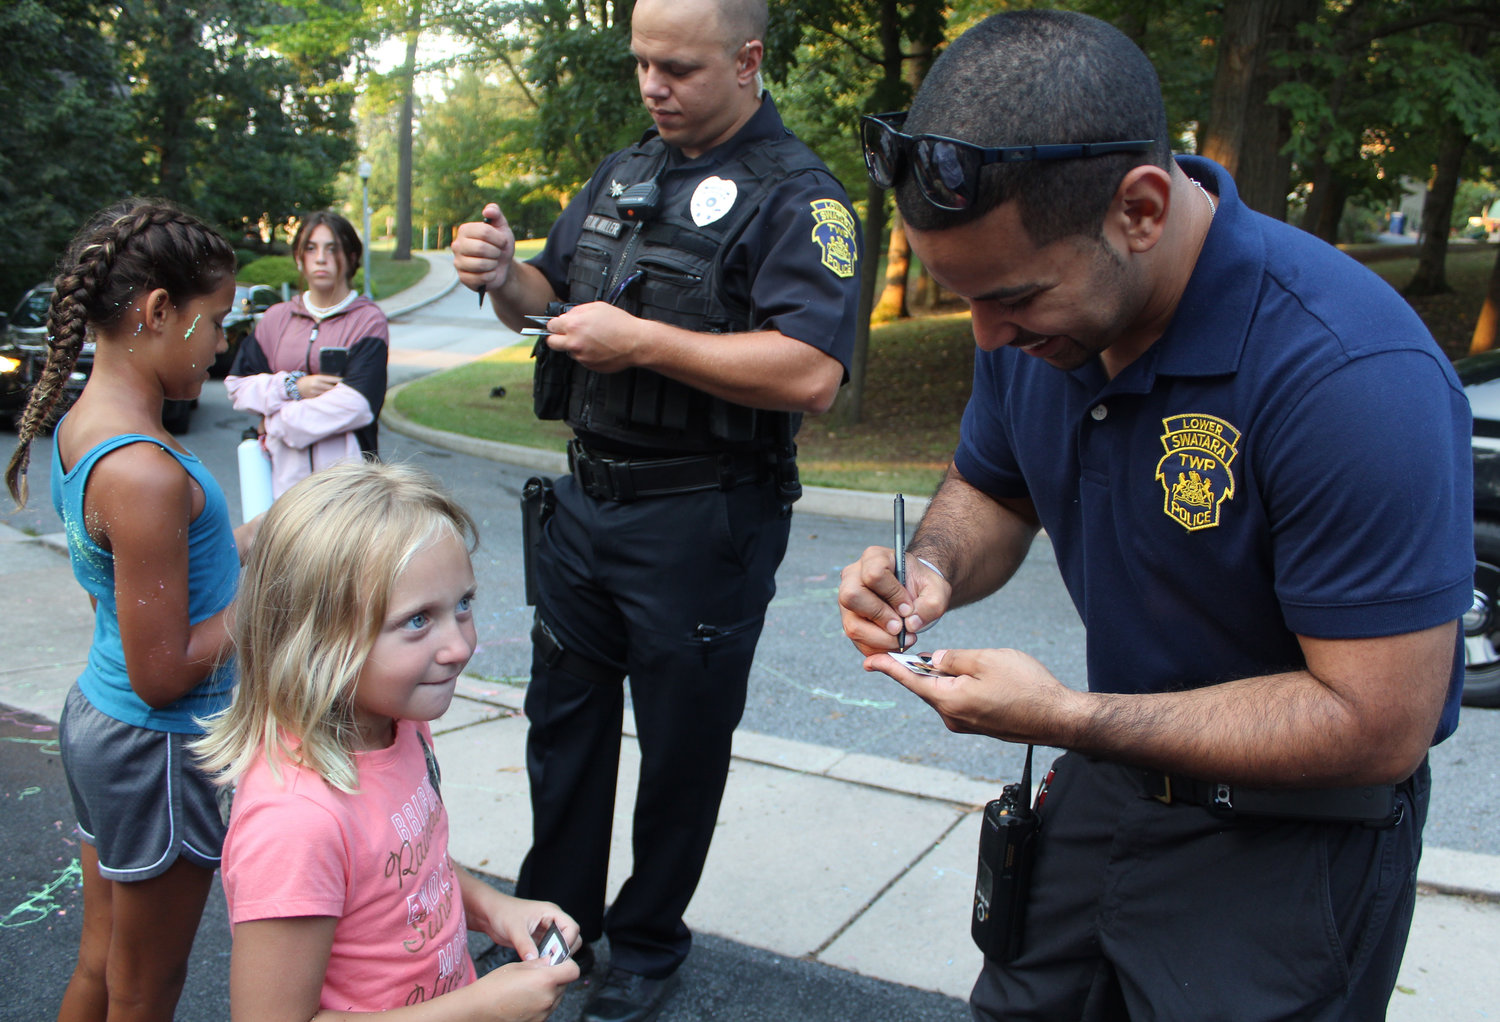 Lucy Stevenson waits for Detective Antonio Gonzalez Jr. to sign his baseball card during National Night Out in Lower Swatara on Aug. 6.